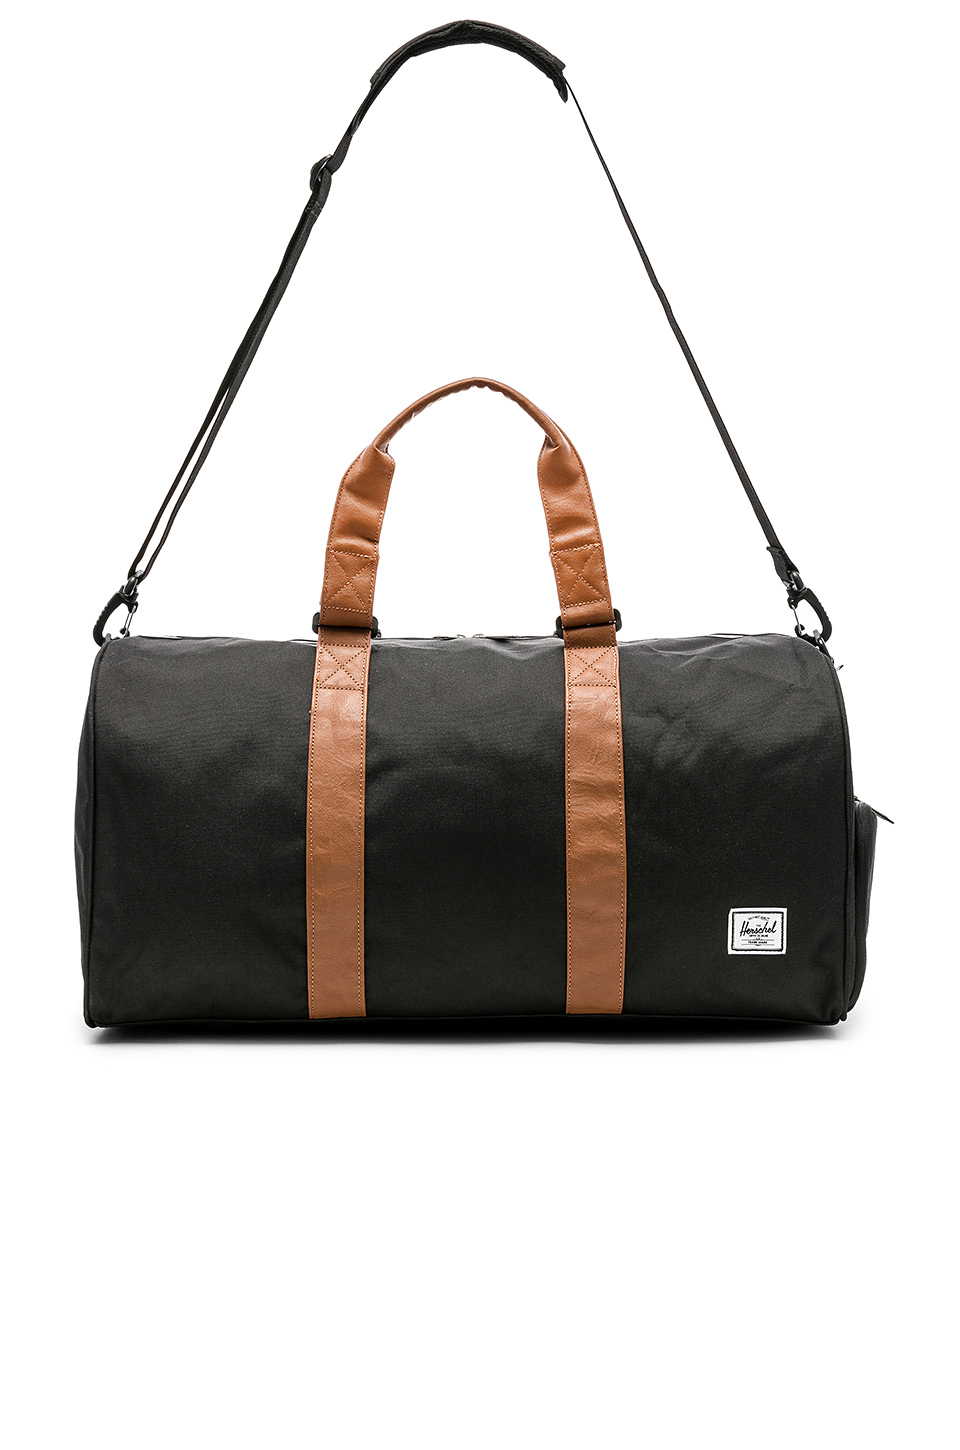 680387136291 Buy Original Herschel Supply Co. Novel Duffle Bag at Indonesia ...